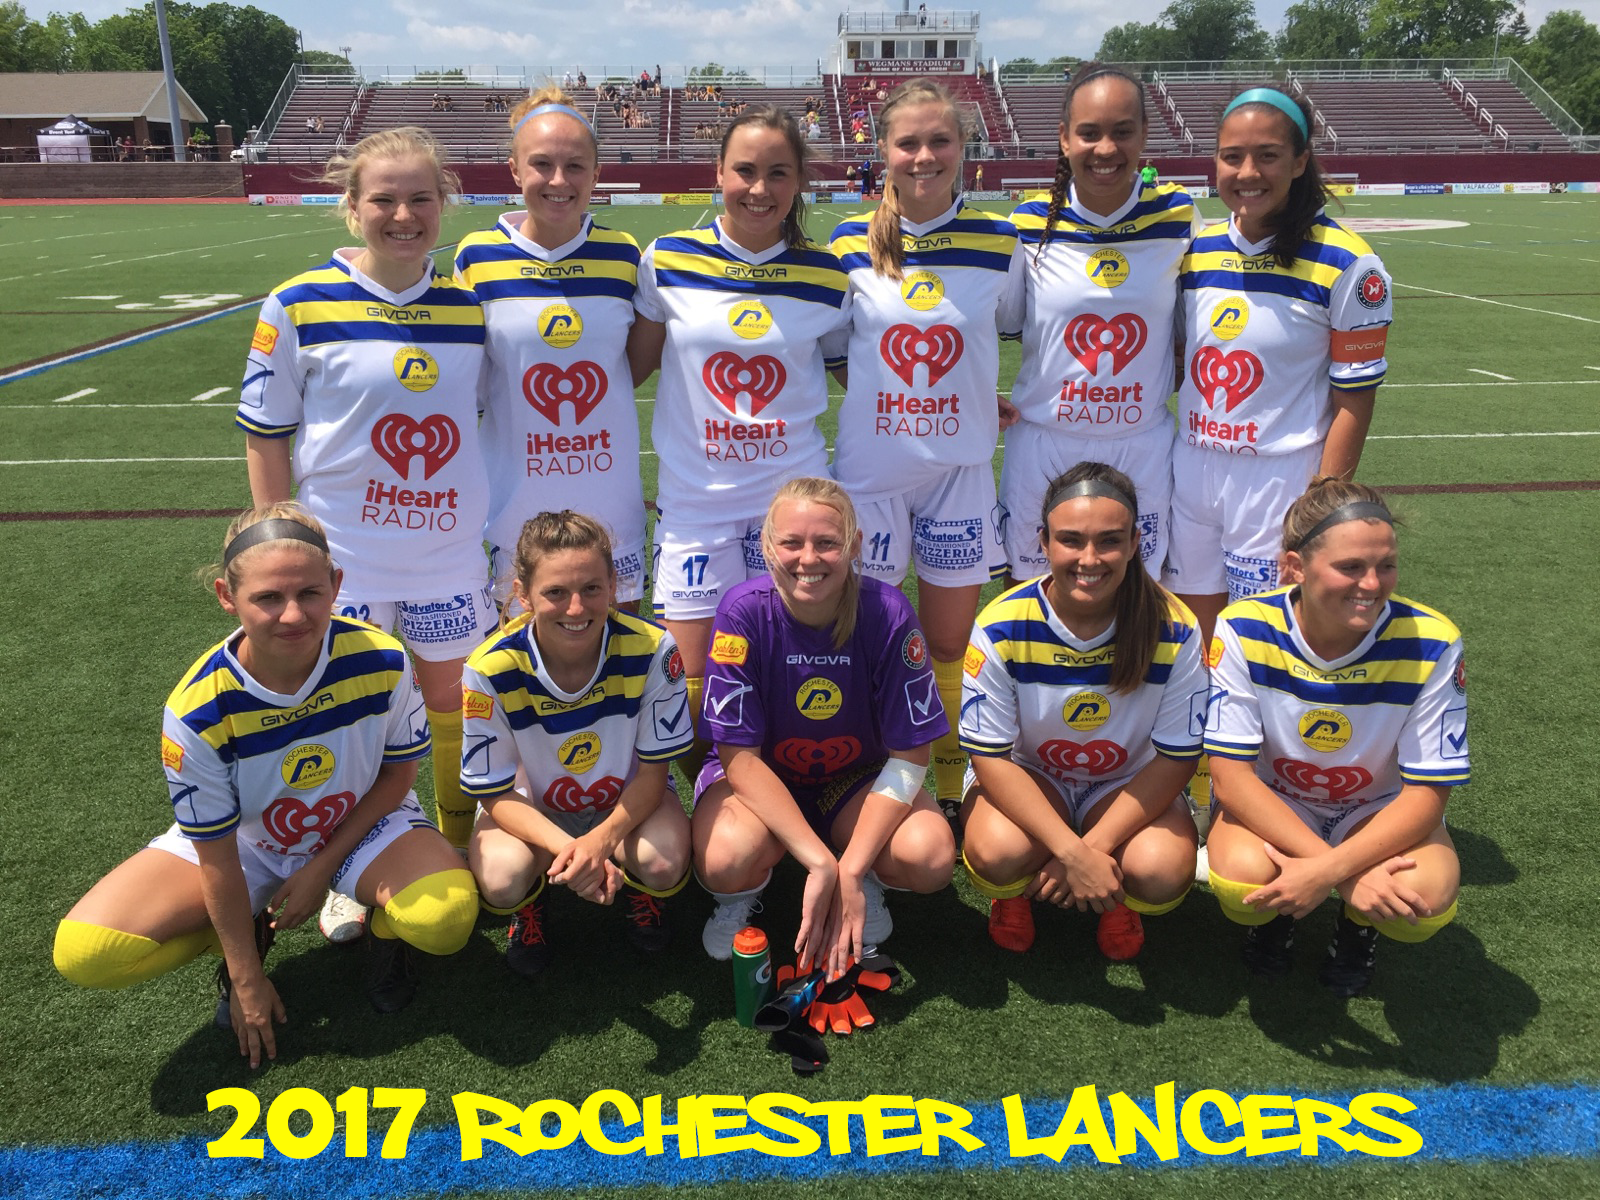 2017 Roster